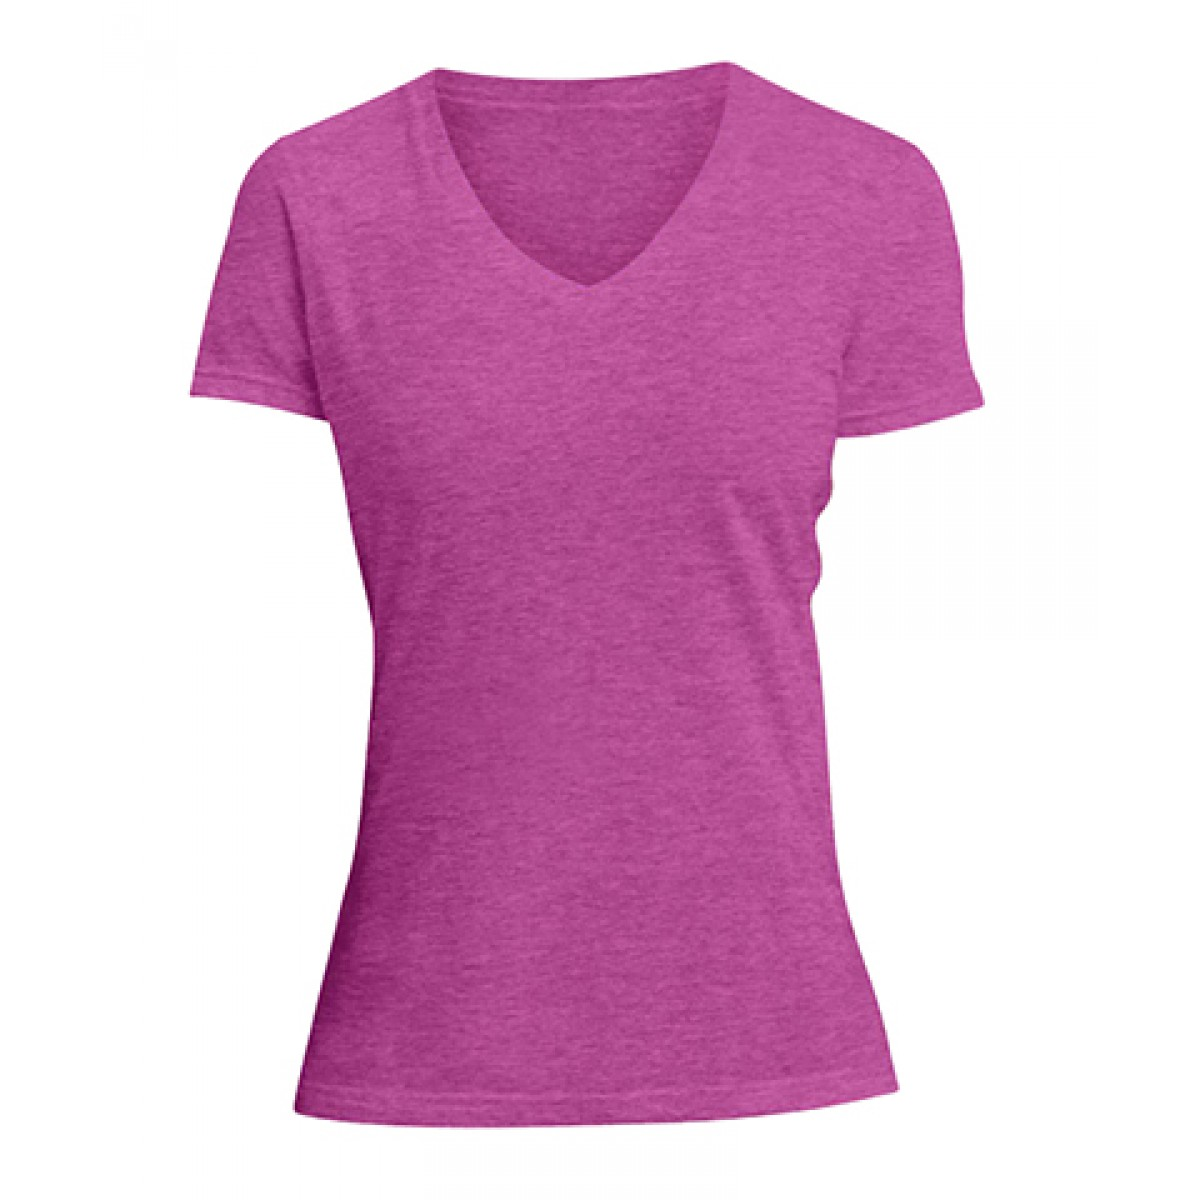 Ladies V-Neck Tee-Heathered Fuscia-L